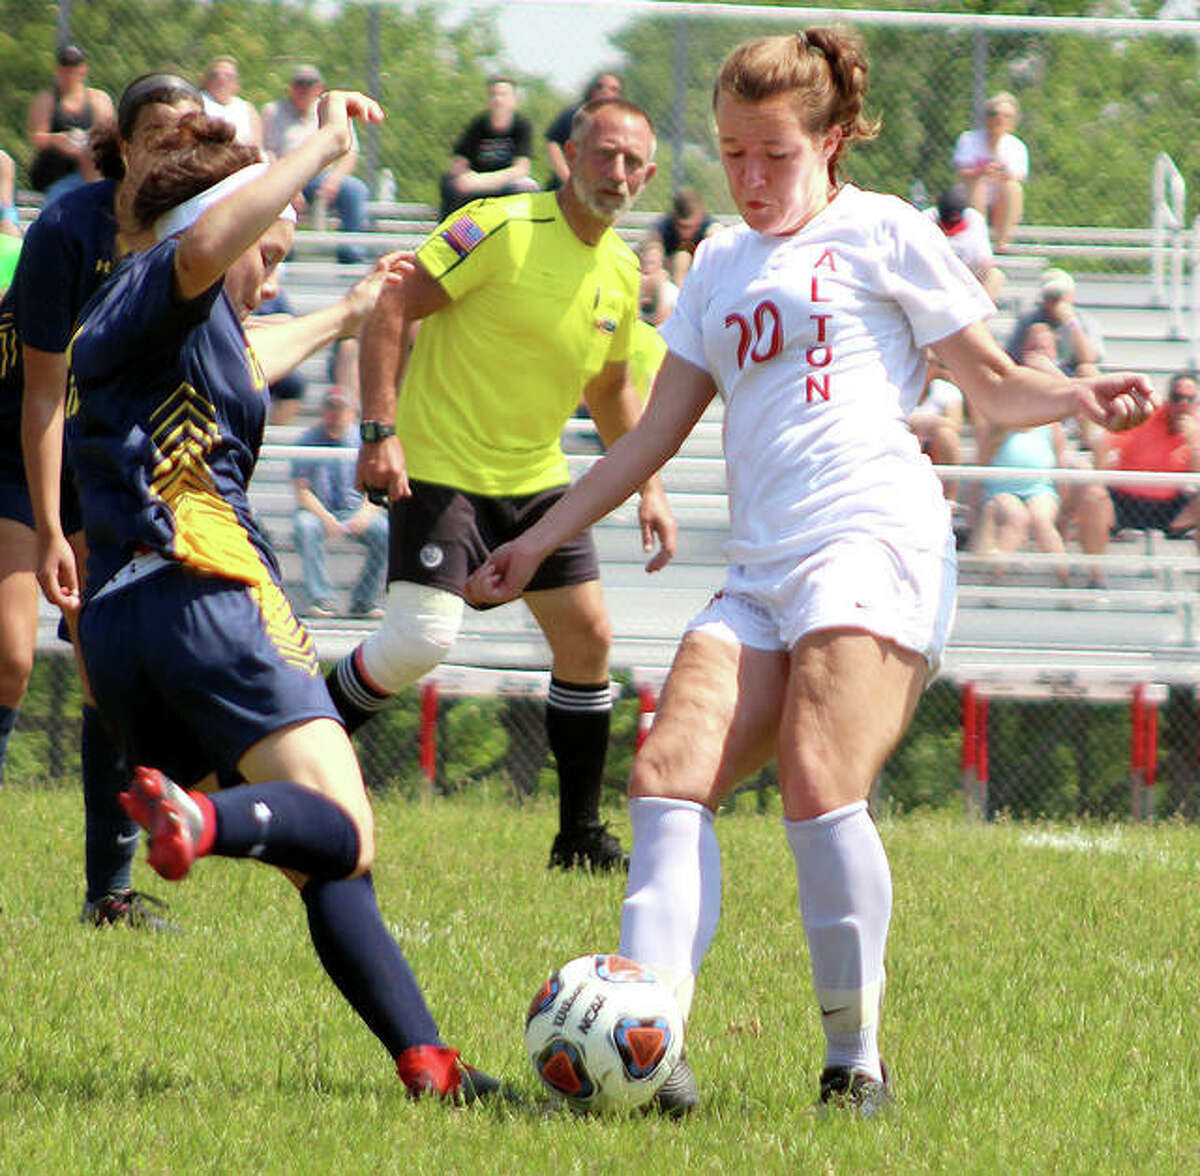 Sydney Brunaugh of Alton, right, scored a first-half goal in the Redbirds' season opener Tuesday at Belleville East. The teams battled to a 1-1 tie through regulation and overtime before East emerged with a 2-1 victory on penalty kicks. Brunaugh is shown in a 2019 game against O'Fallon.